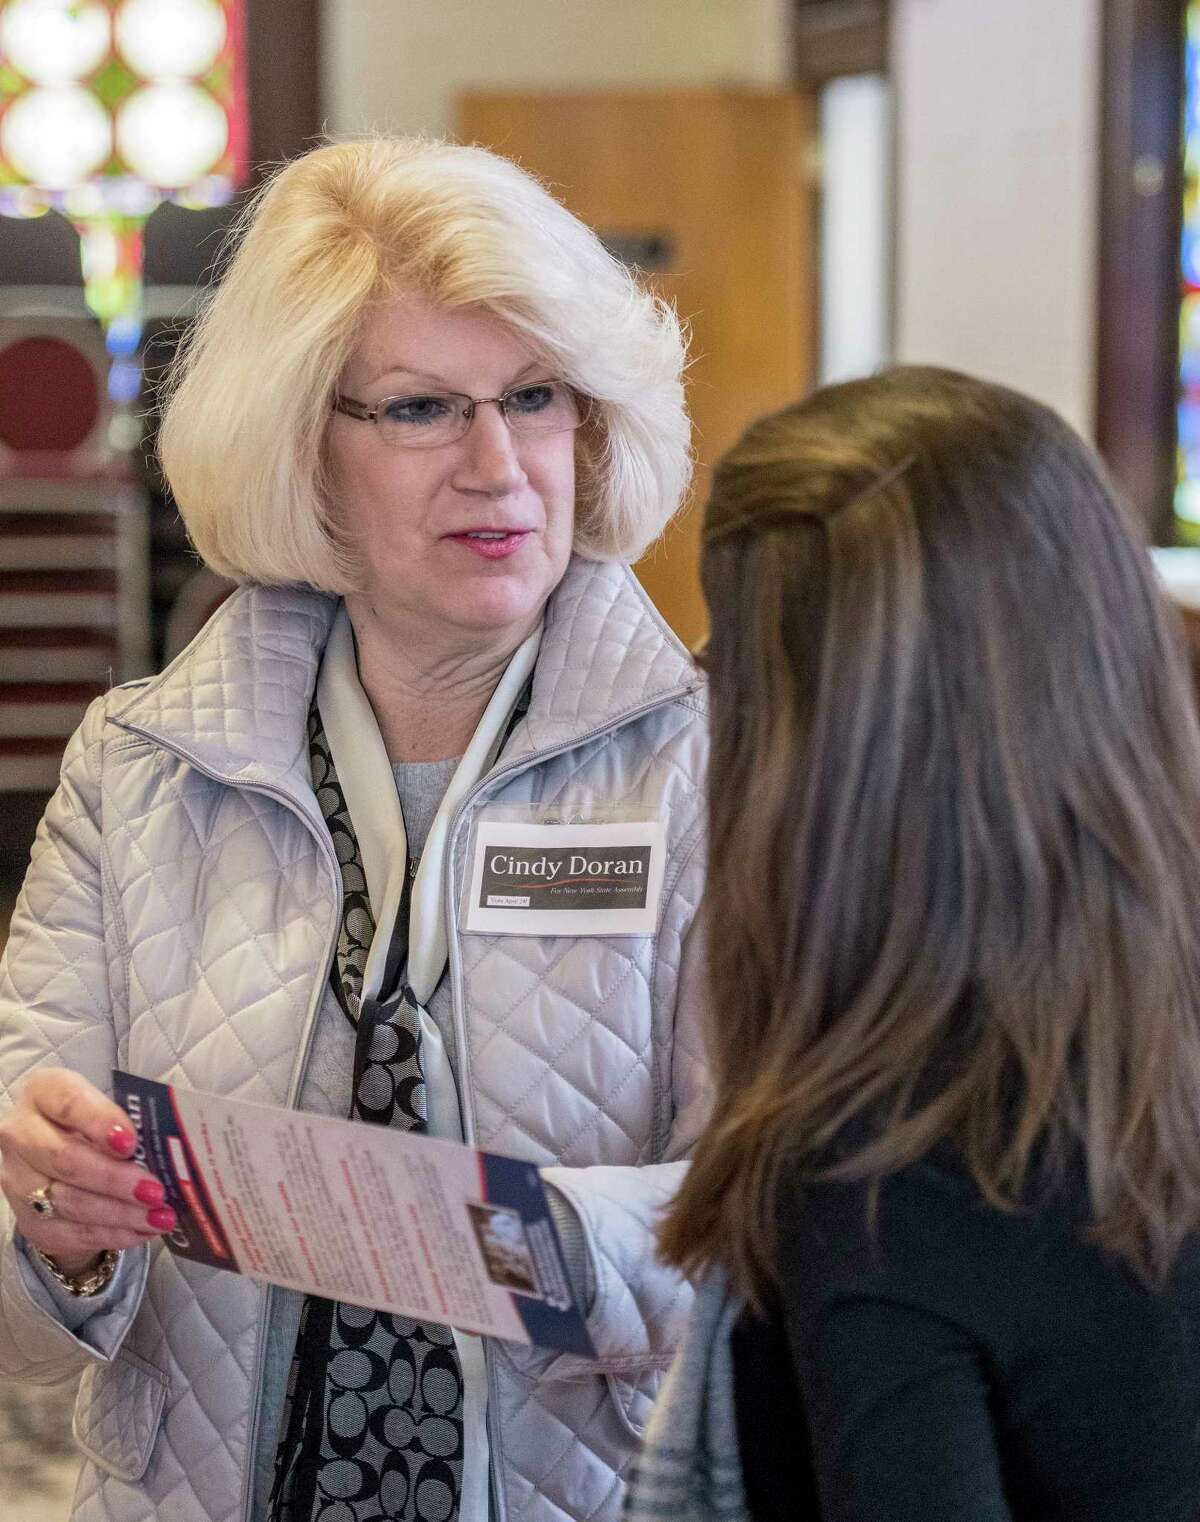 Assembly candidate Cindy Doran, left speaks with a constituent(that asked not to be identified) Friday. 6, 2018 in Troy, N.Y. (Skip Dickstein/Times Union)